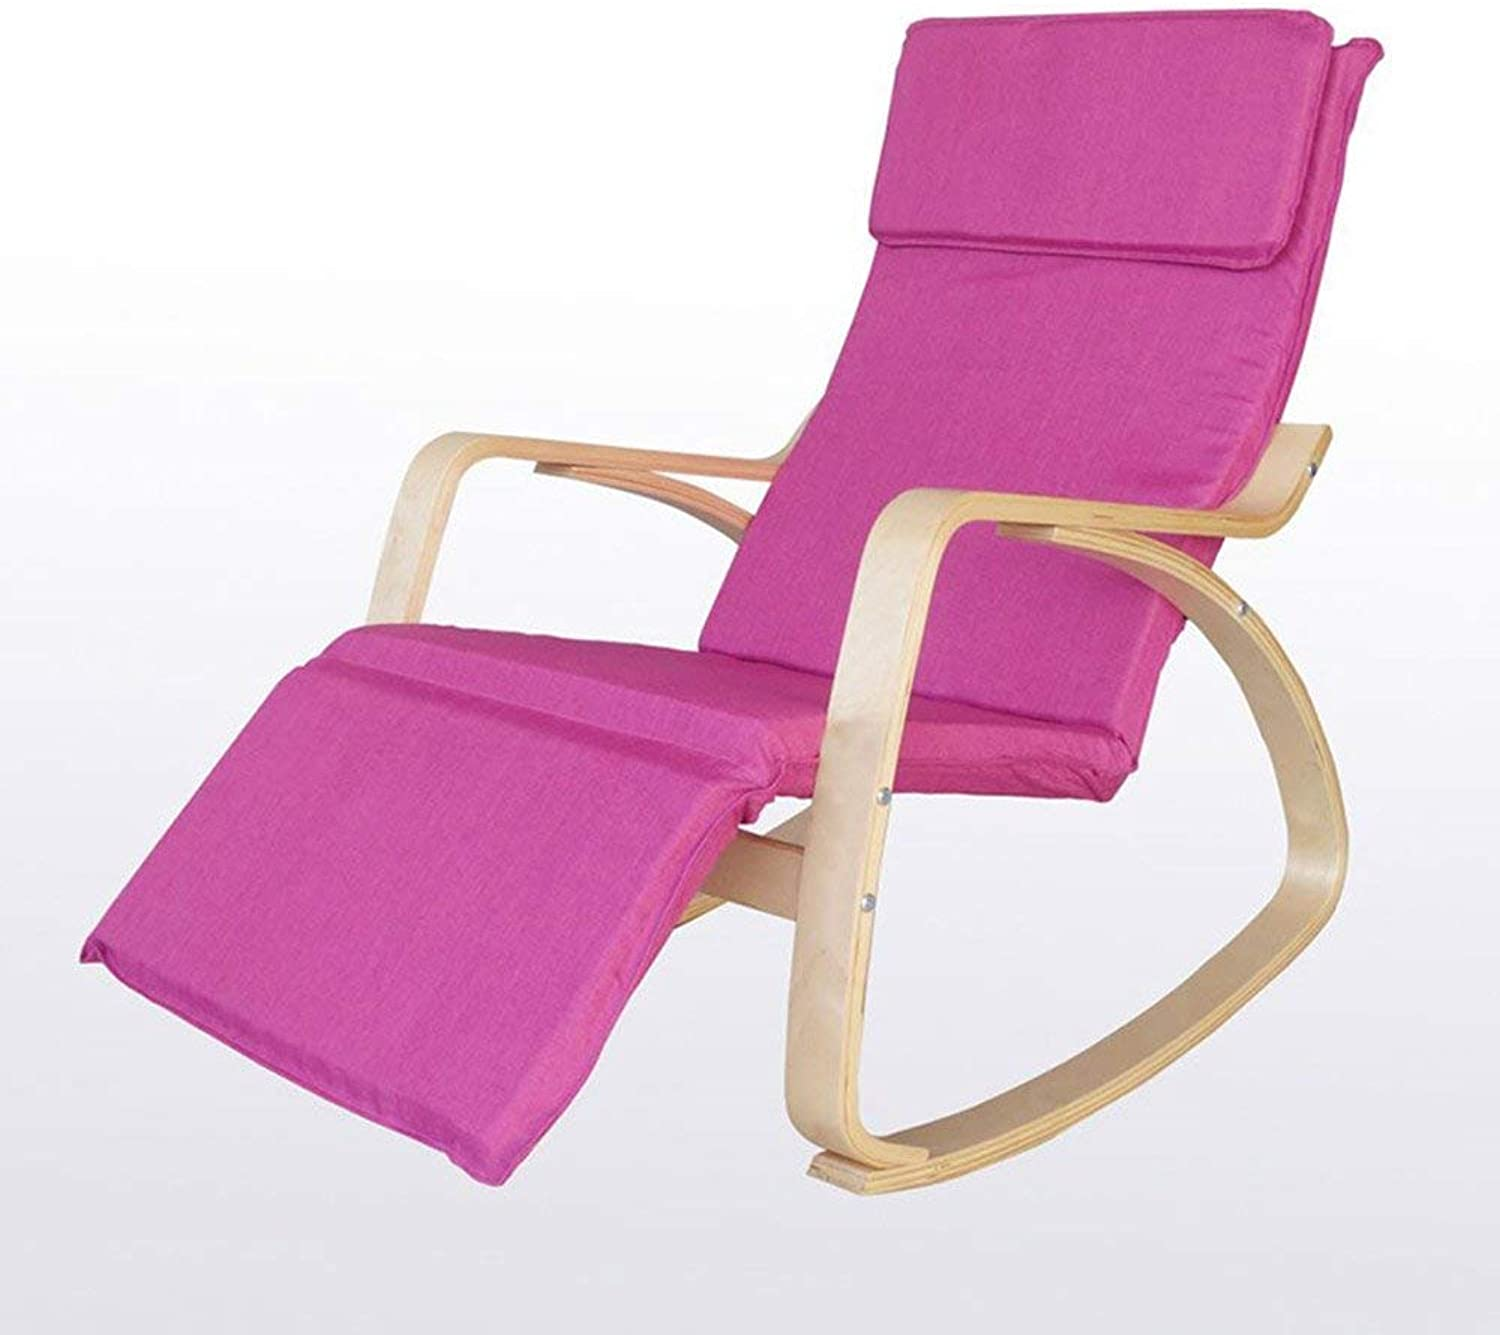 Rocking Chair Adult Balcony Recreational Sofa Nostalgic Chair North Europe Solid Wood Lazy Rocking Chair (color  Waterproof Pink)